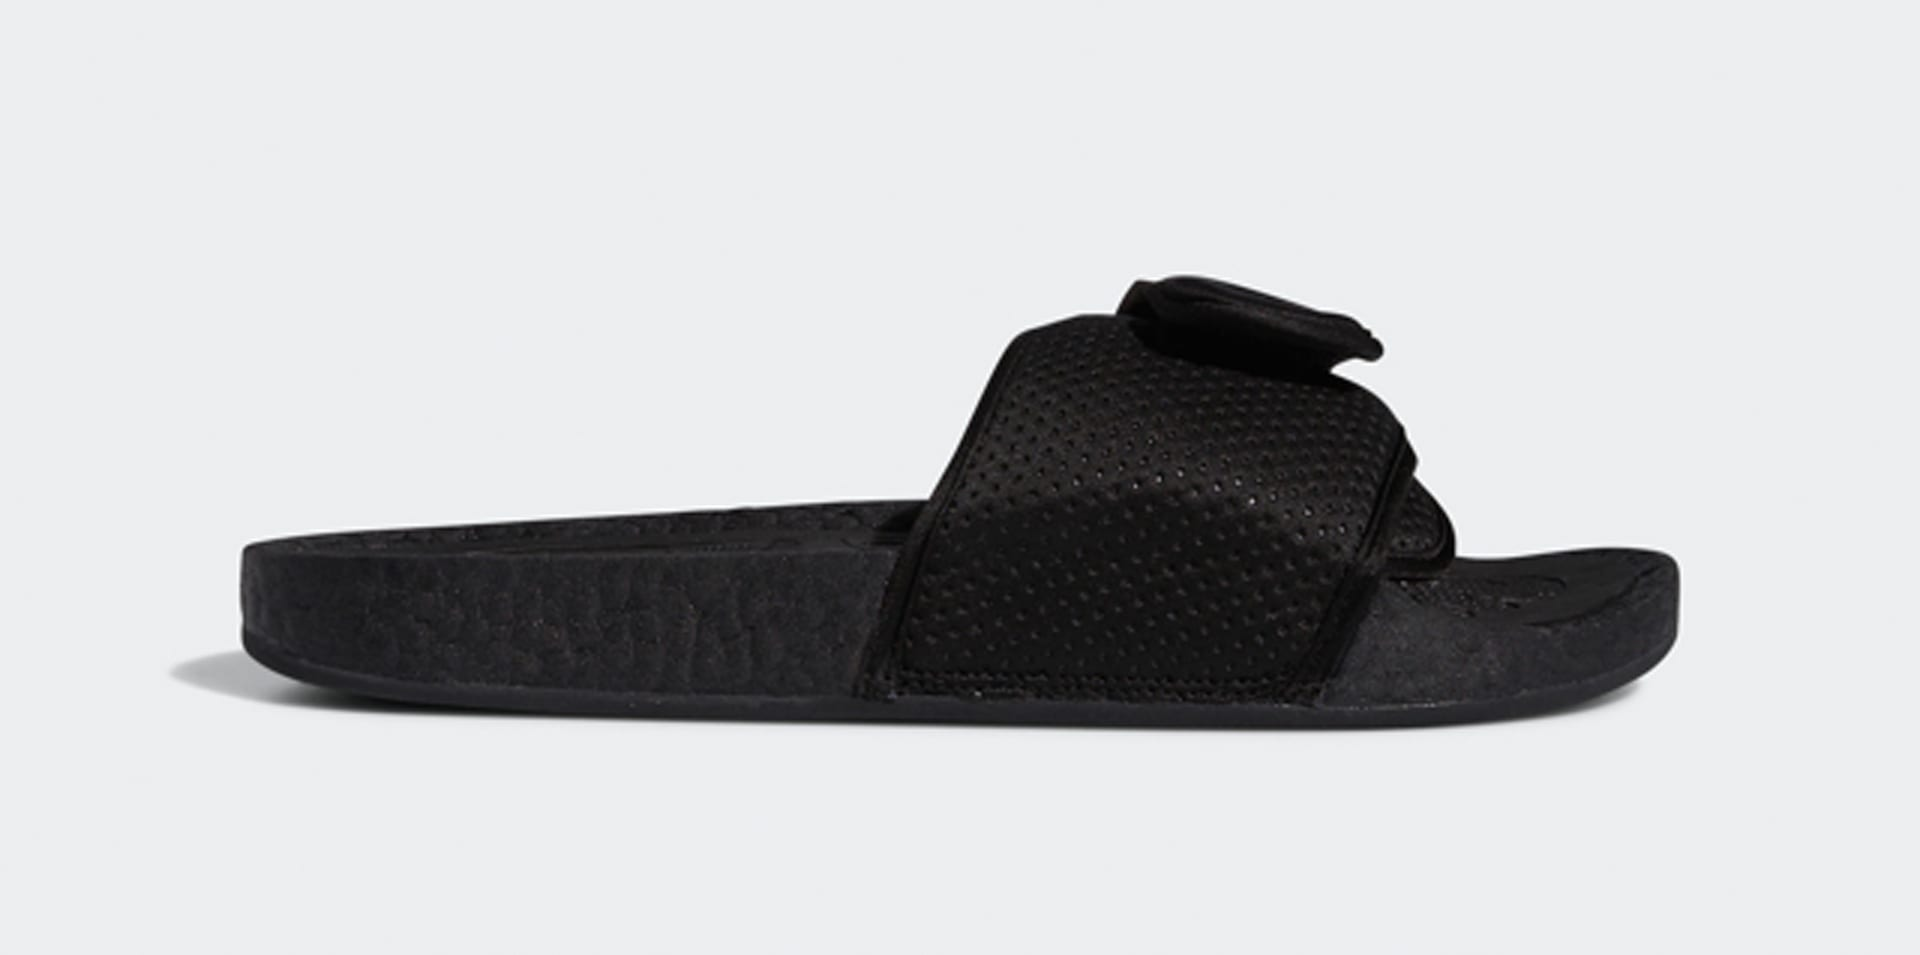 Pharrell x Adidas PW Boost Slide 'Core Black' Lateral